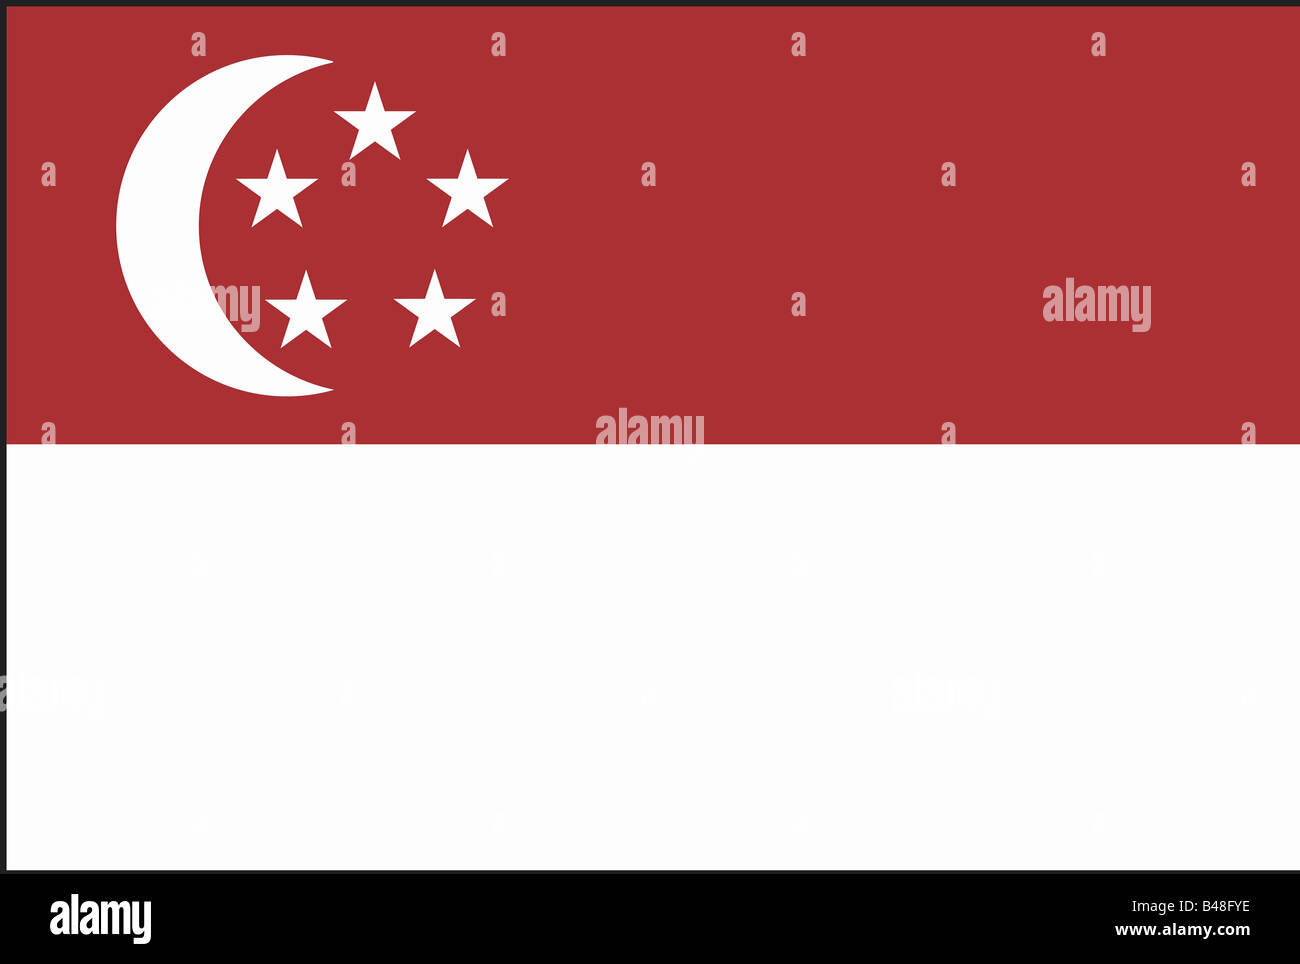 Heraldry emblem singapore national flag introduced 3121959 heraldry emblem singapore national flag introduced 3121959 ensign symbol flag asia crescent stars commonwealth ge biocorpaavc Gallery